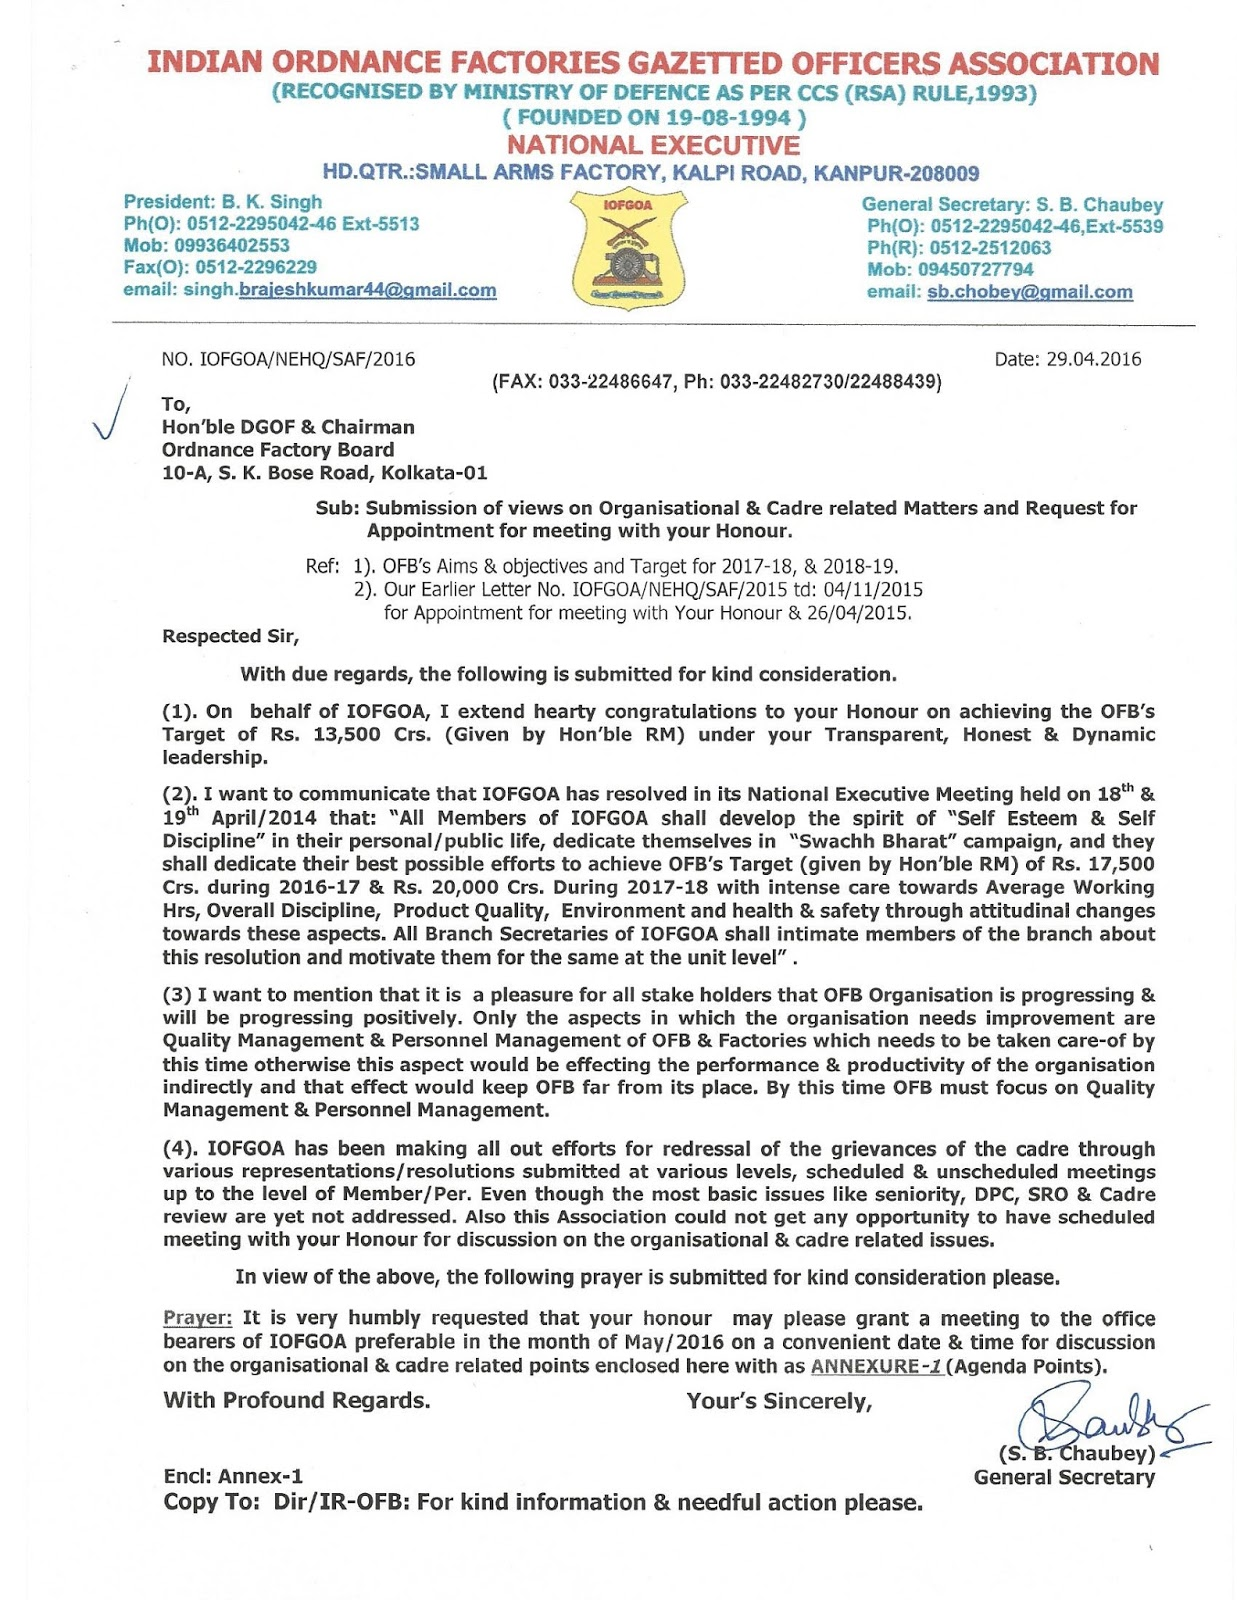 Iofgoa indian ordnance factories gazzetted officers association request for appointment to dgof chairman ofb and jsls altavistaventures Choice Image